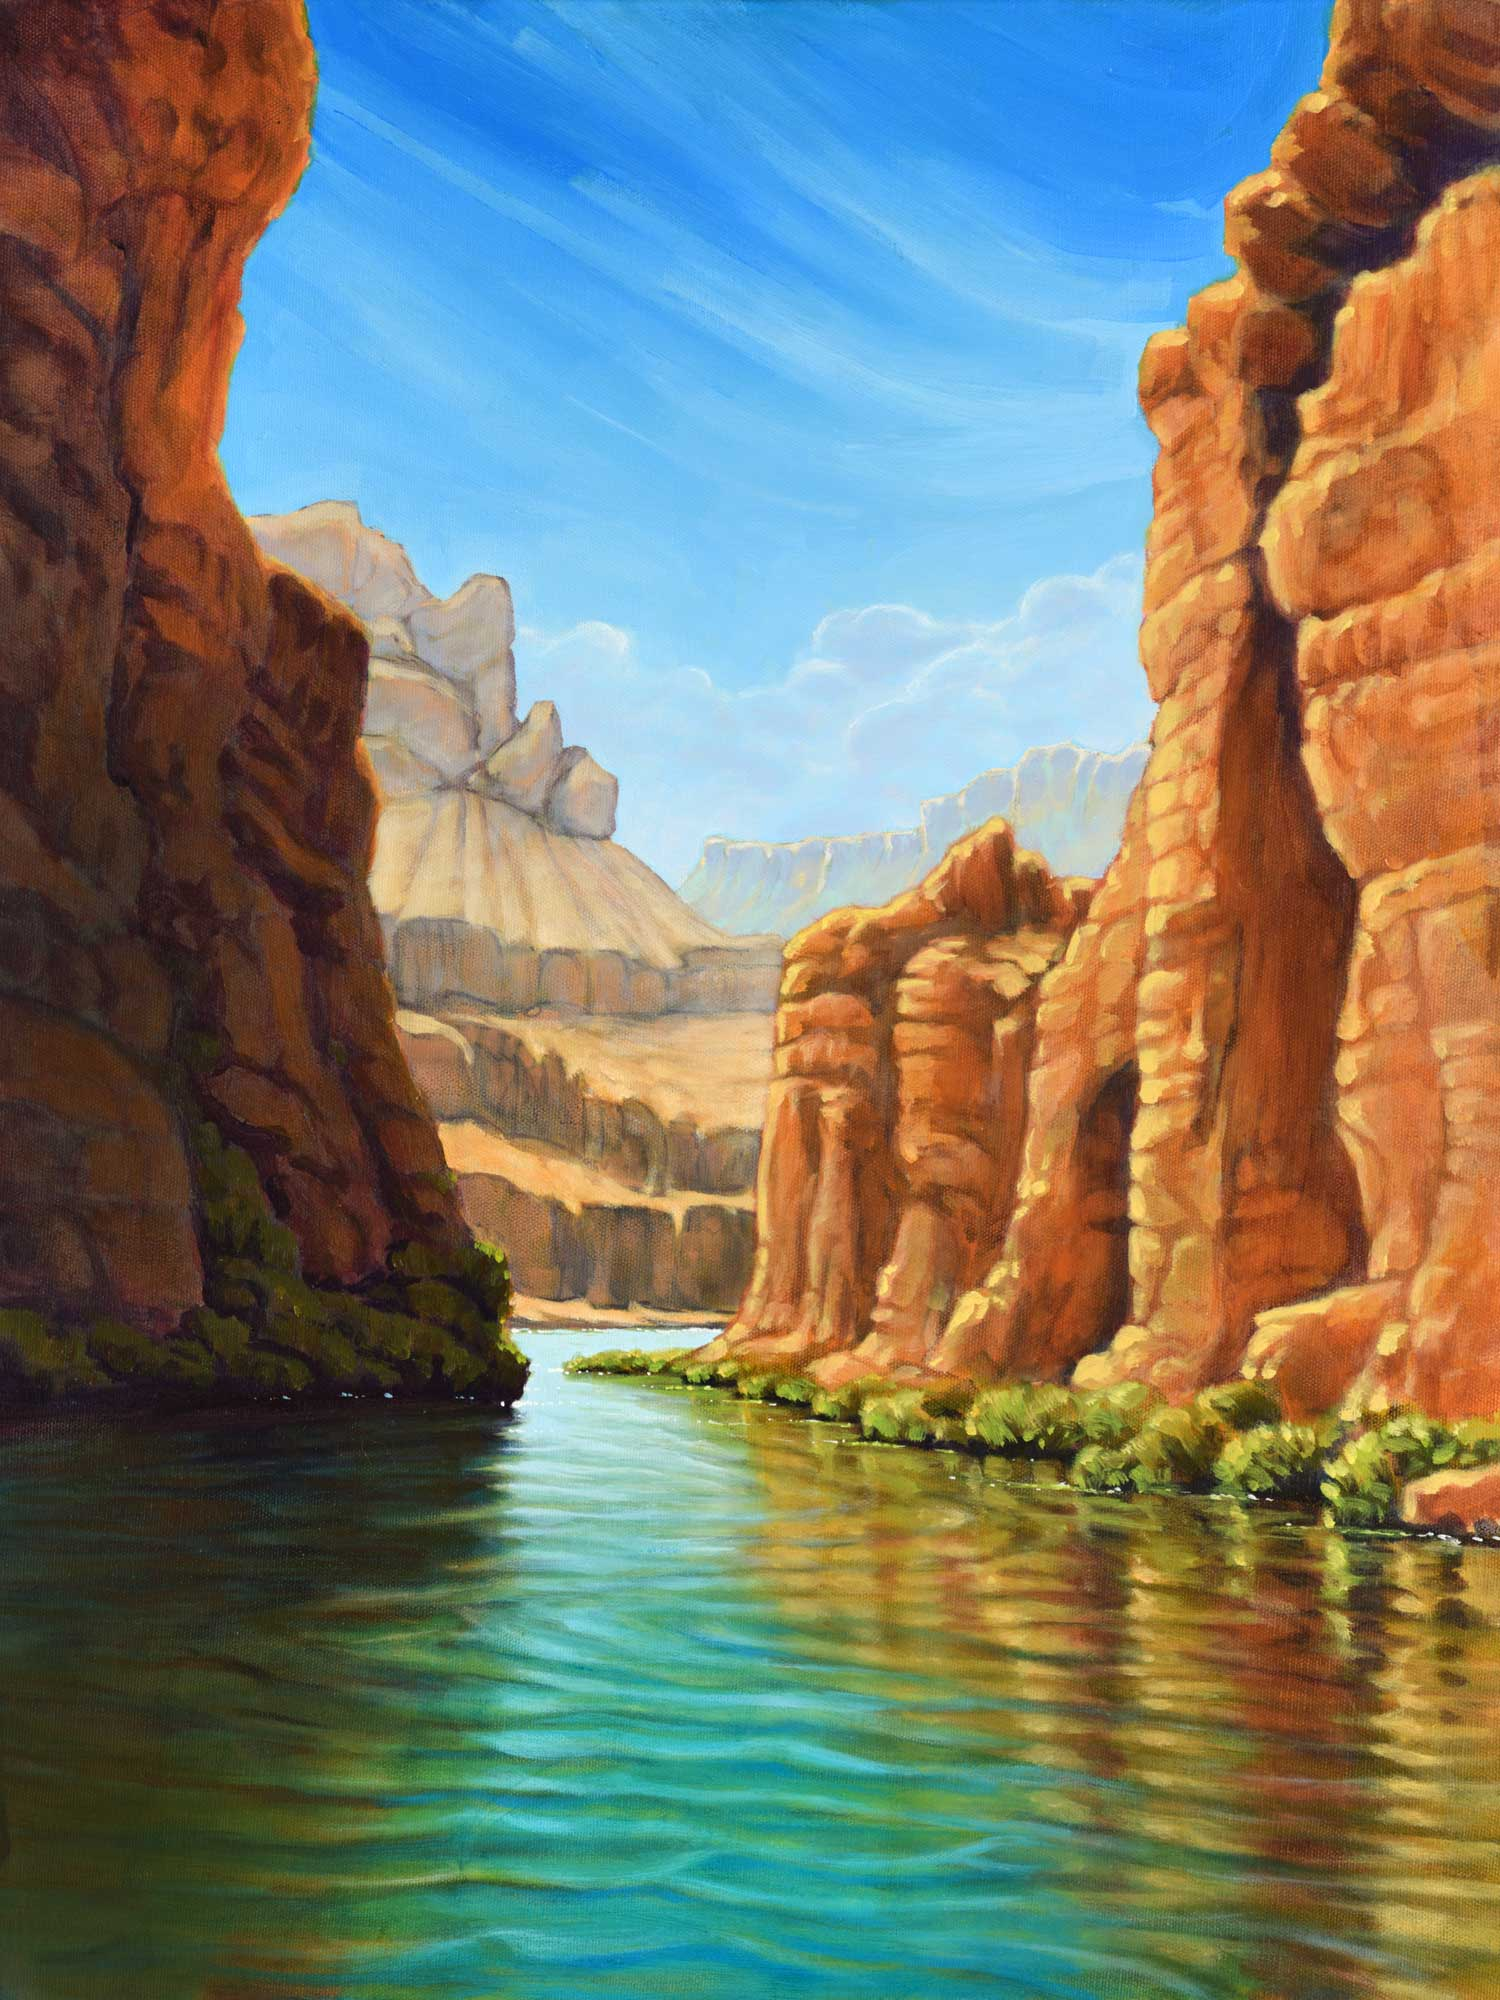 A landscape painting of the Colorado River in the Grand Canyon in Arizona